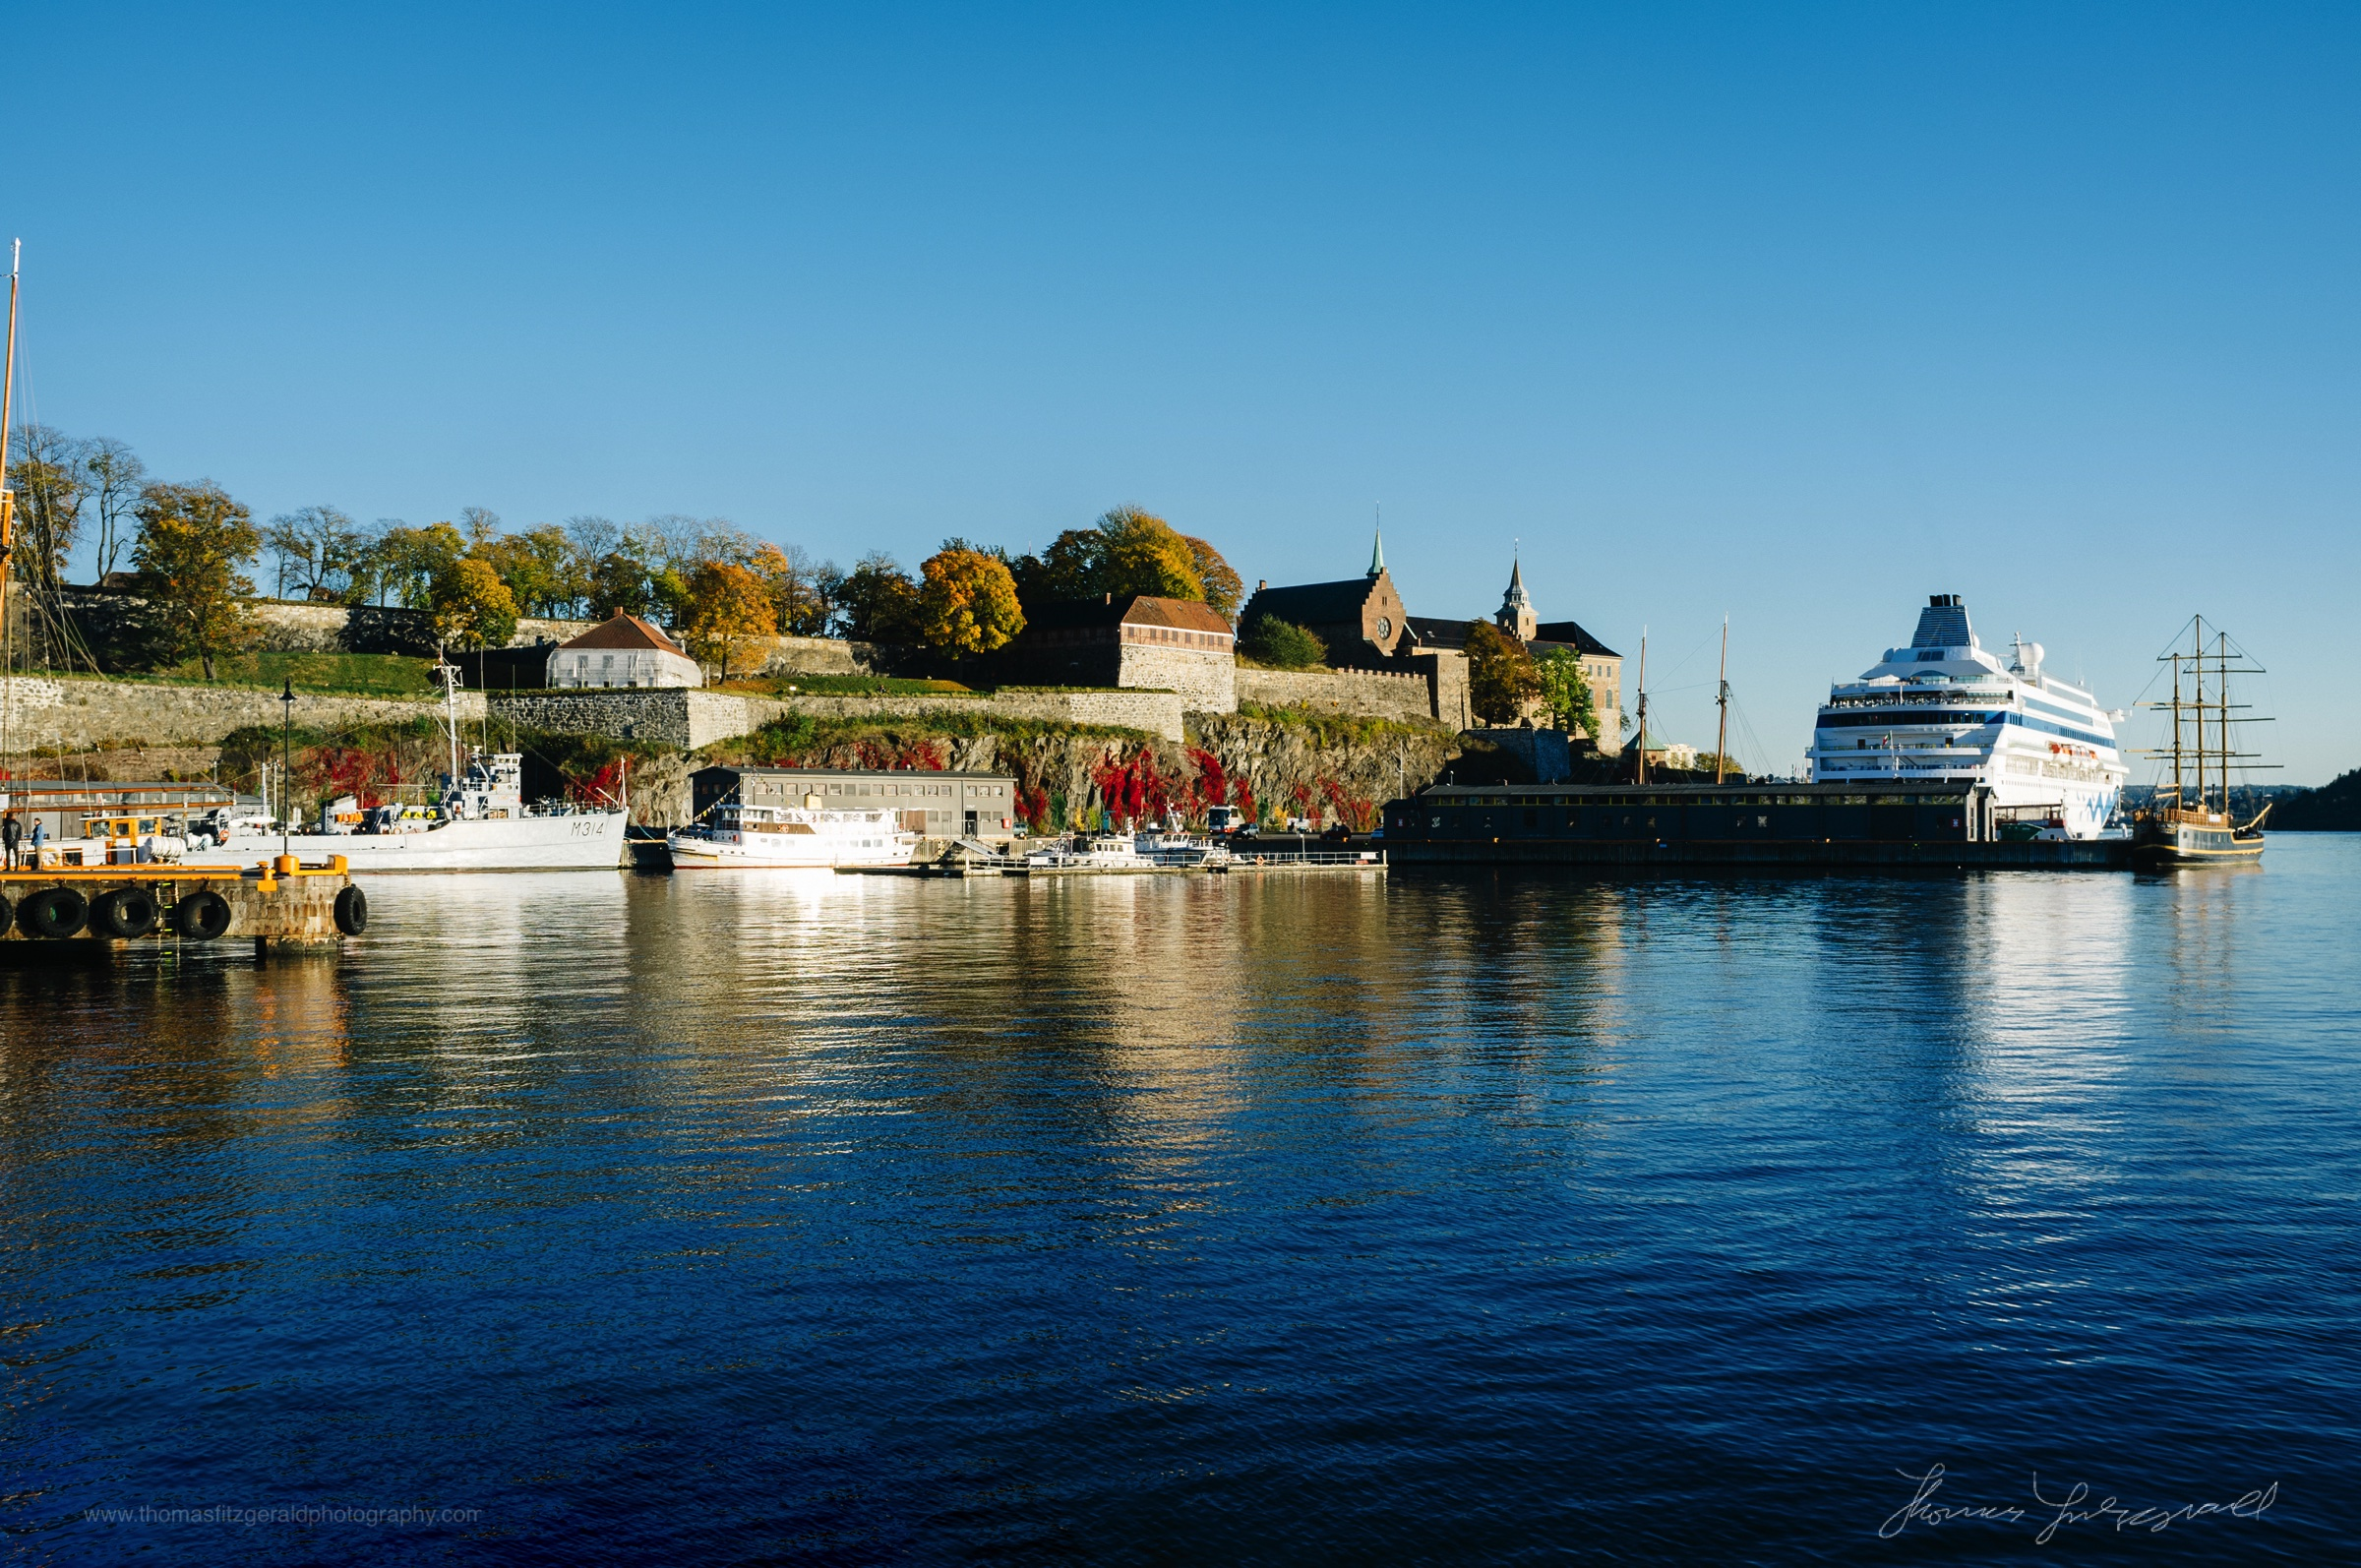 The Castle and the Cruise Ship